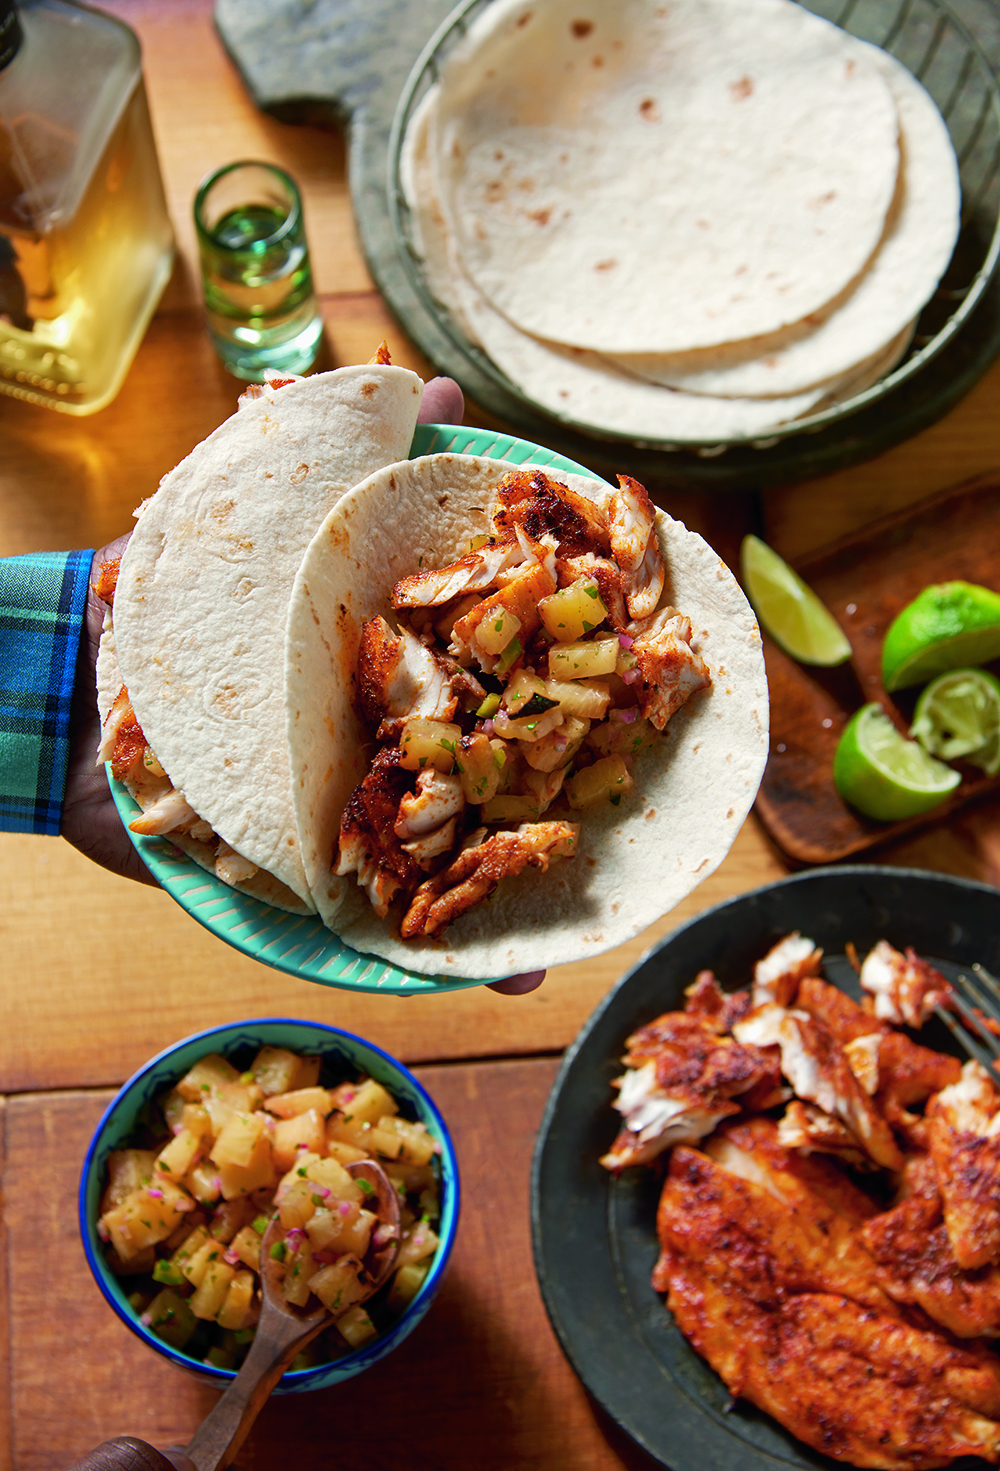 Weber's American Barbecue Blackened Barramundi Tacos with Barbecued Pineapple Salsa